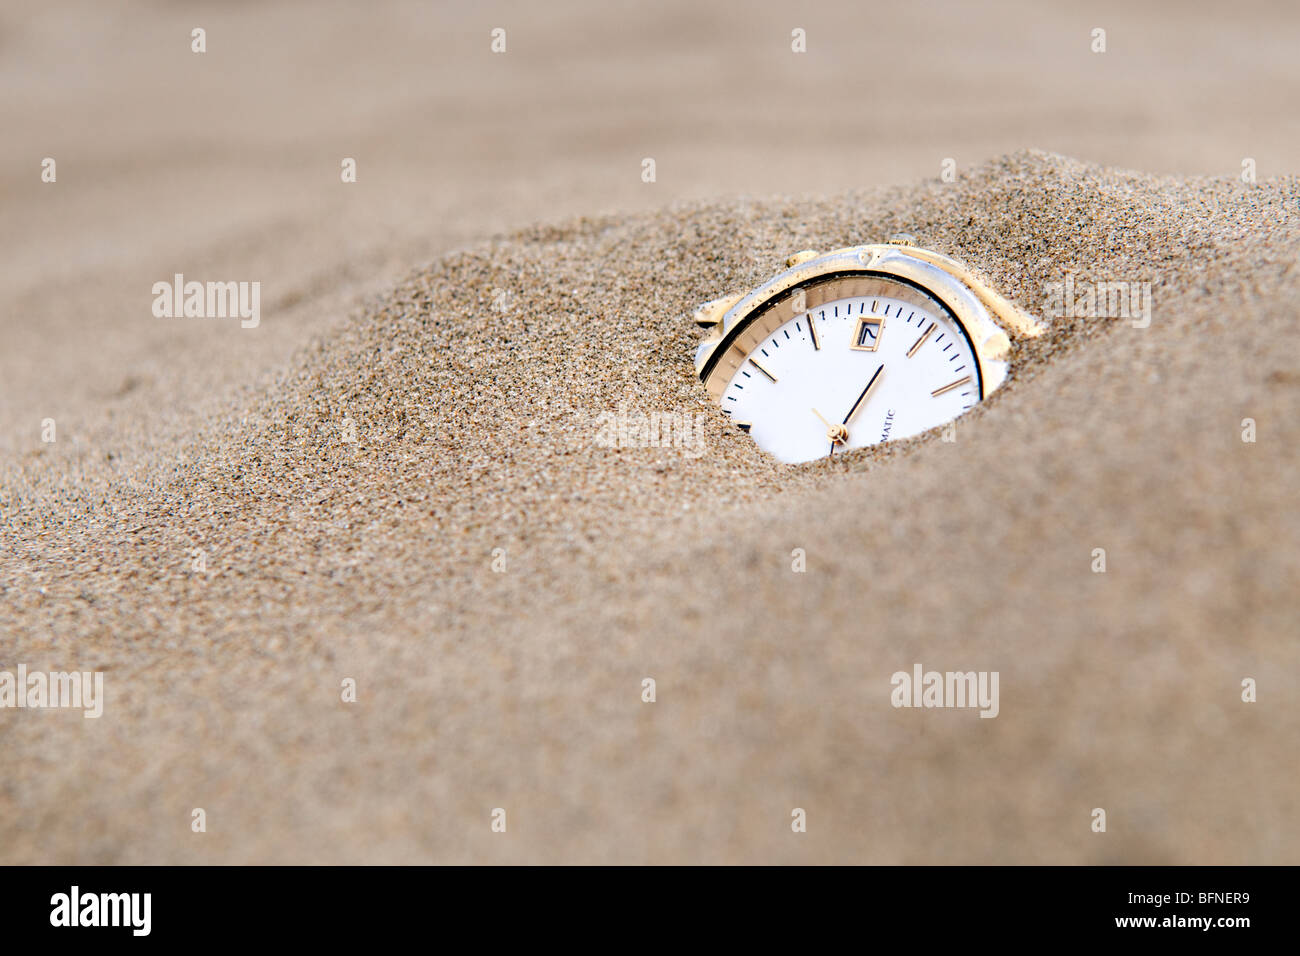 Enterré dans le sable watch prises pour illustrer le concept des sables du temps Photo Stock